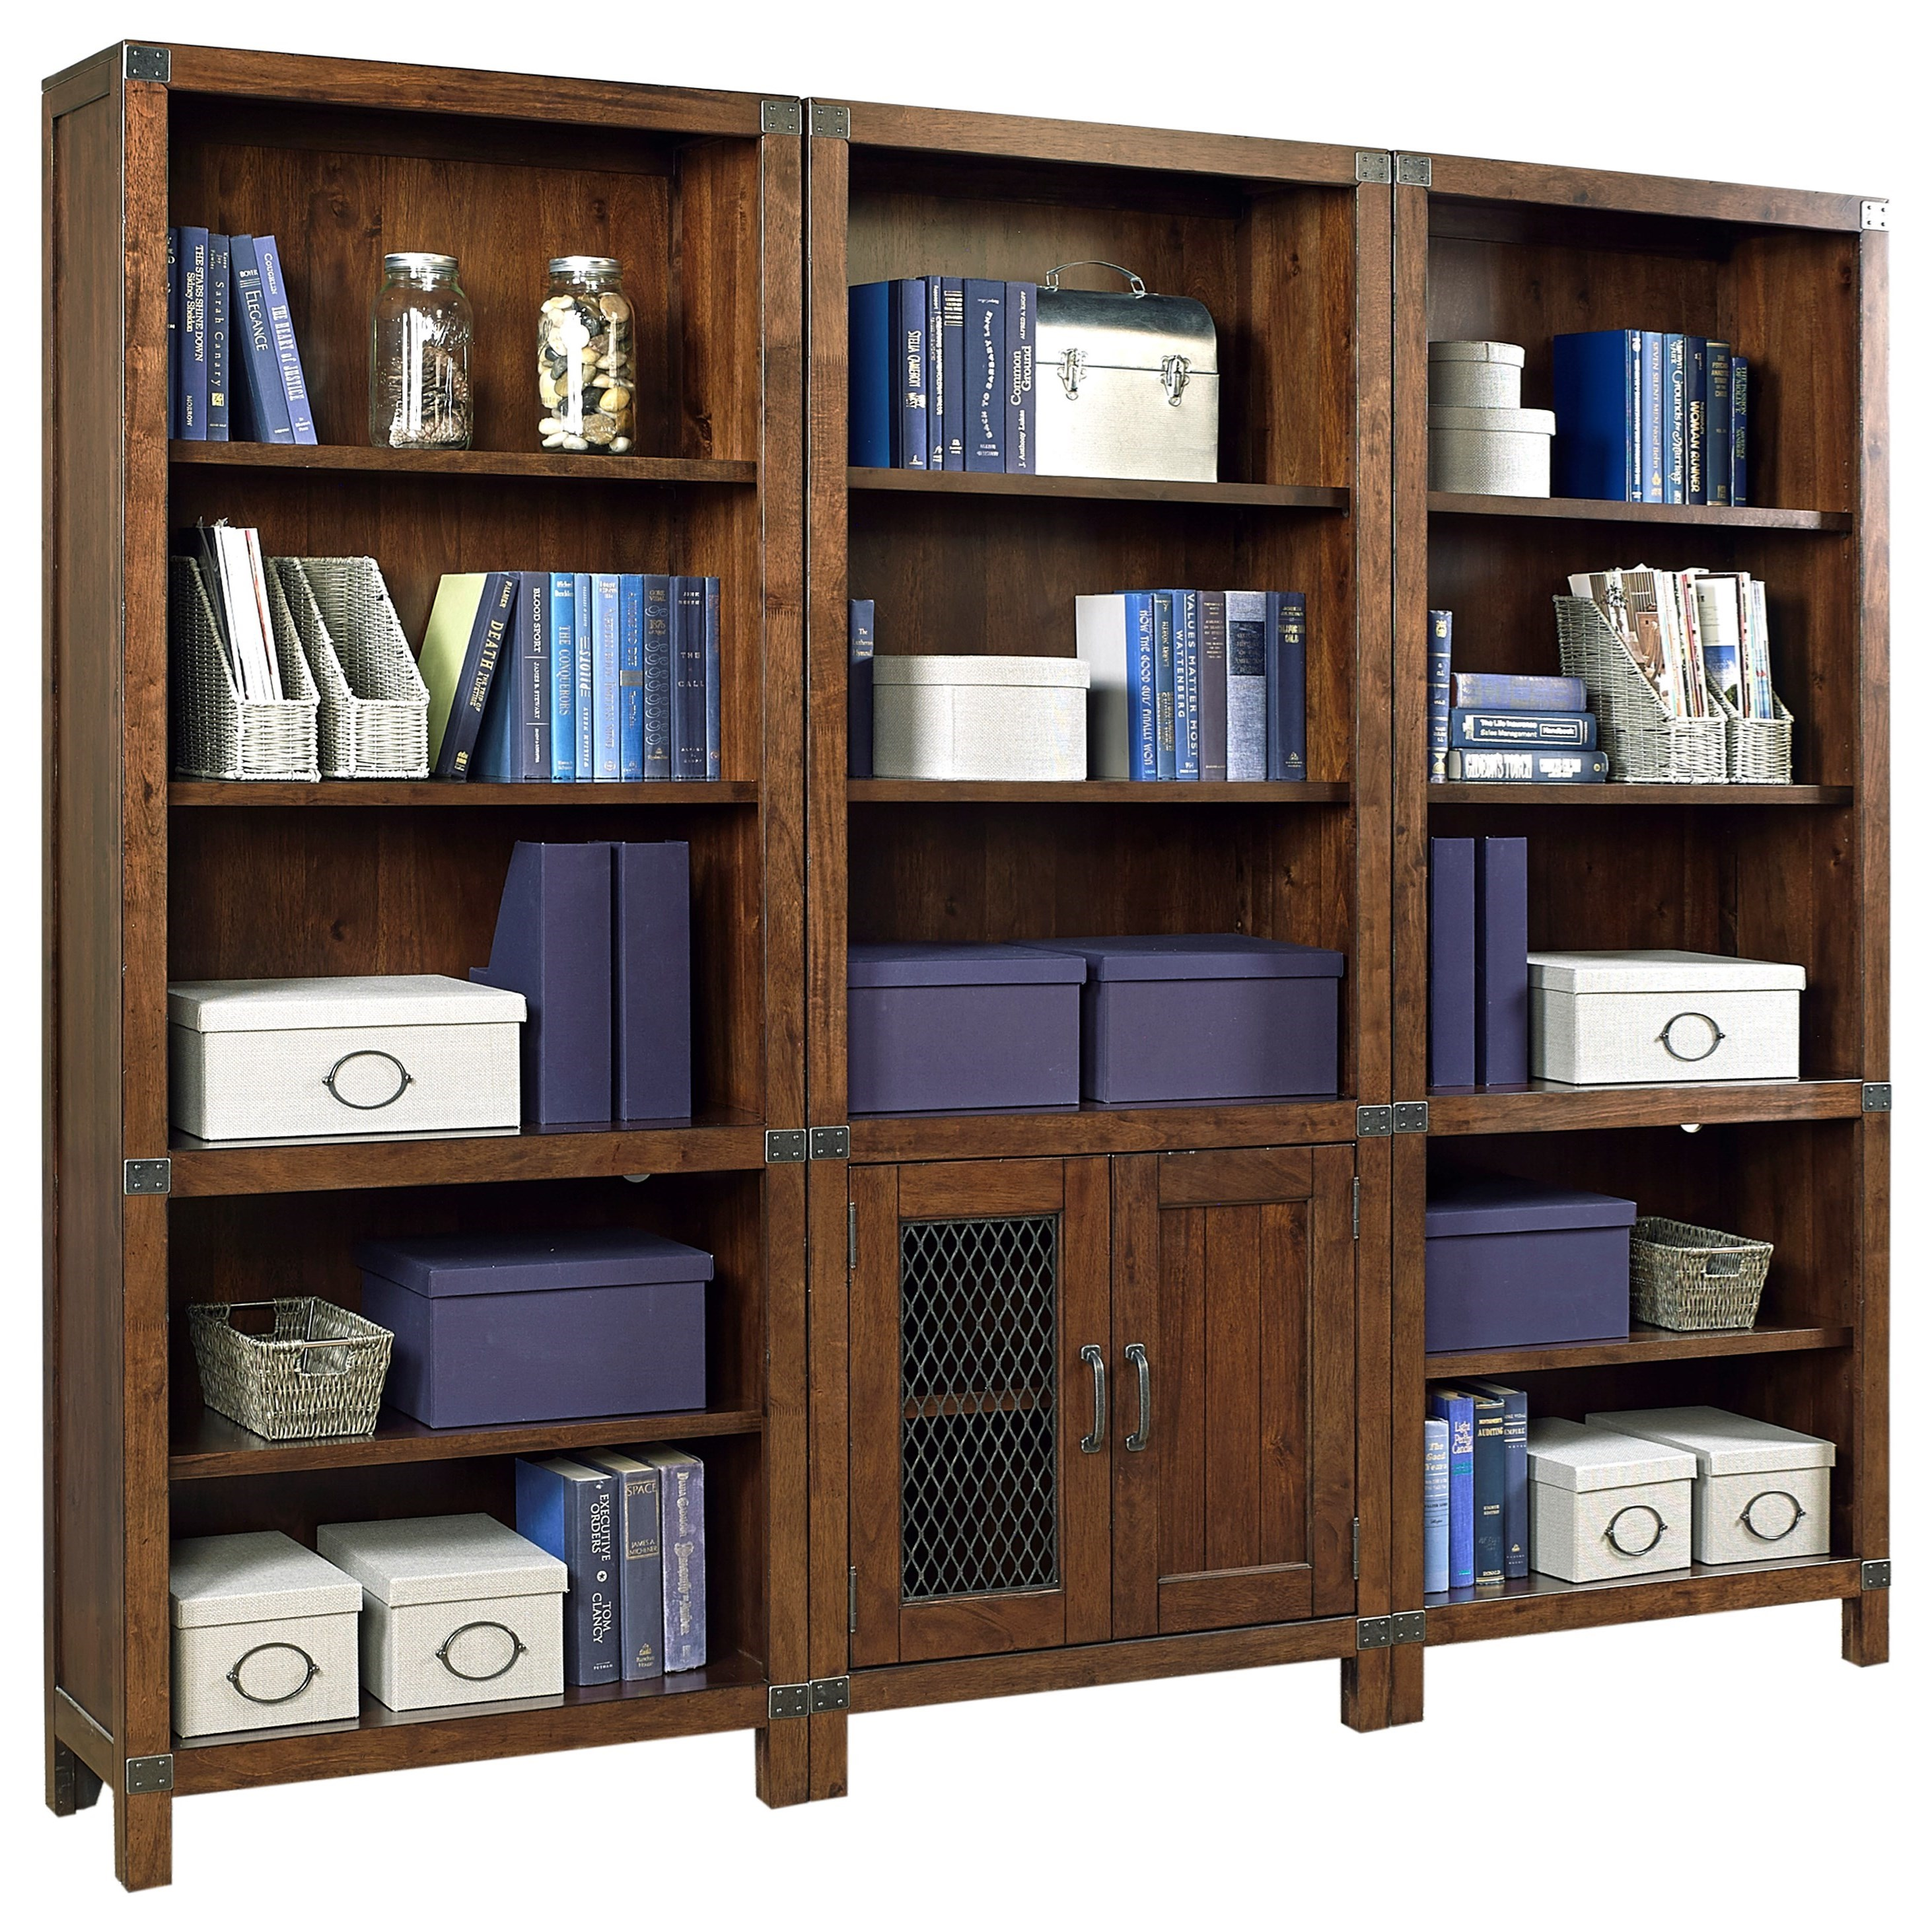 Birch Home Canfield Bookcase With Intergchangeable Wood Or Metal Grill Doors Sprintz Furniture